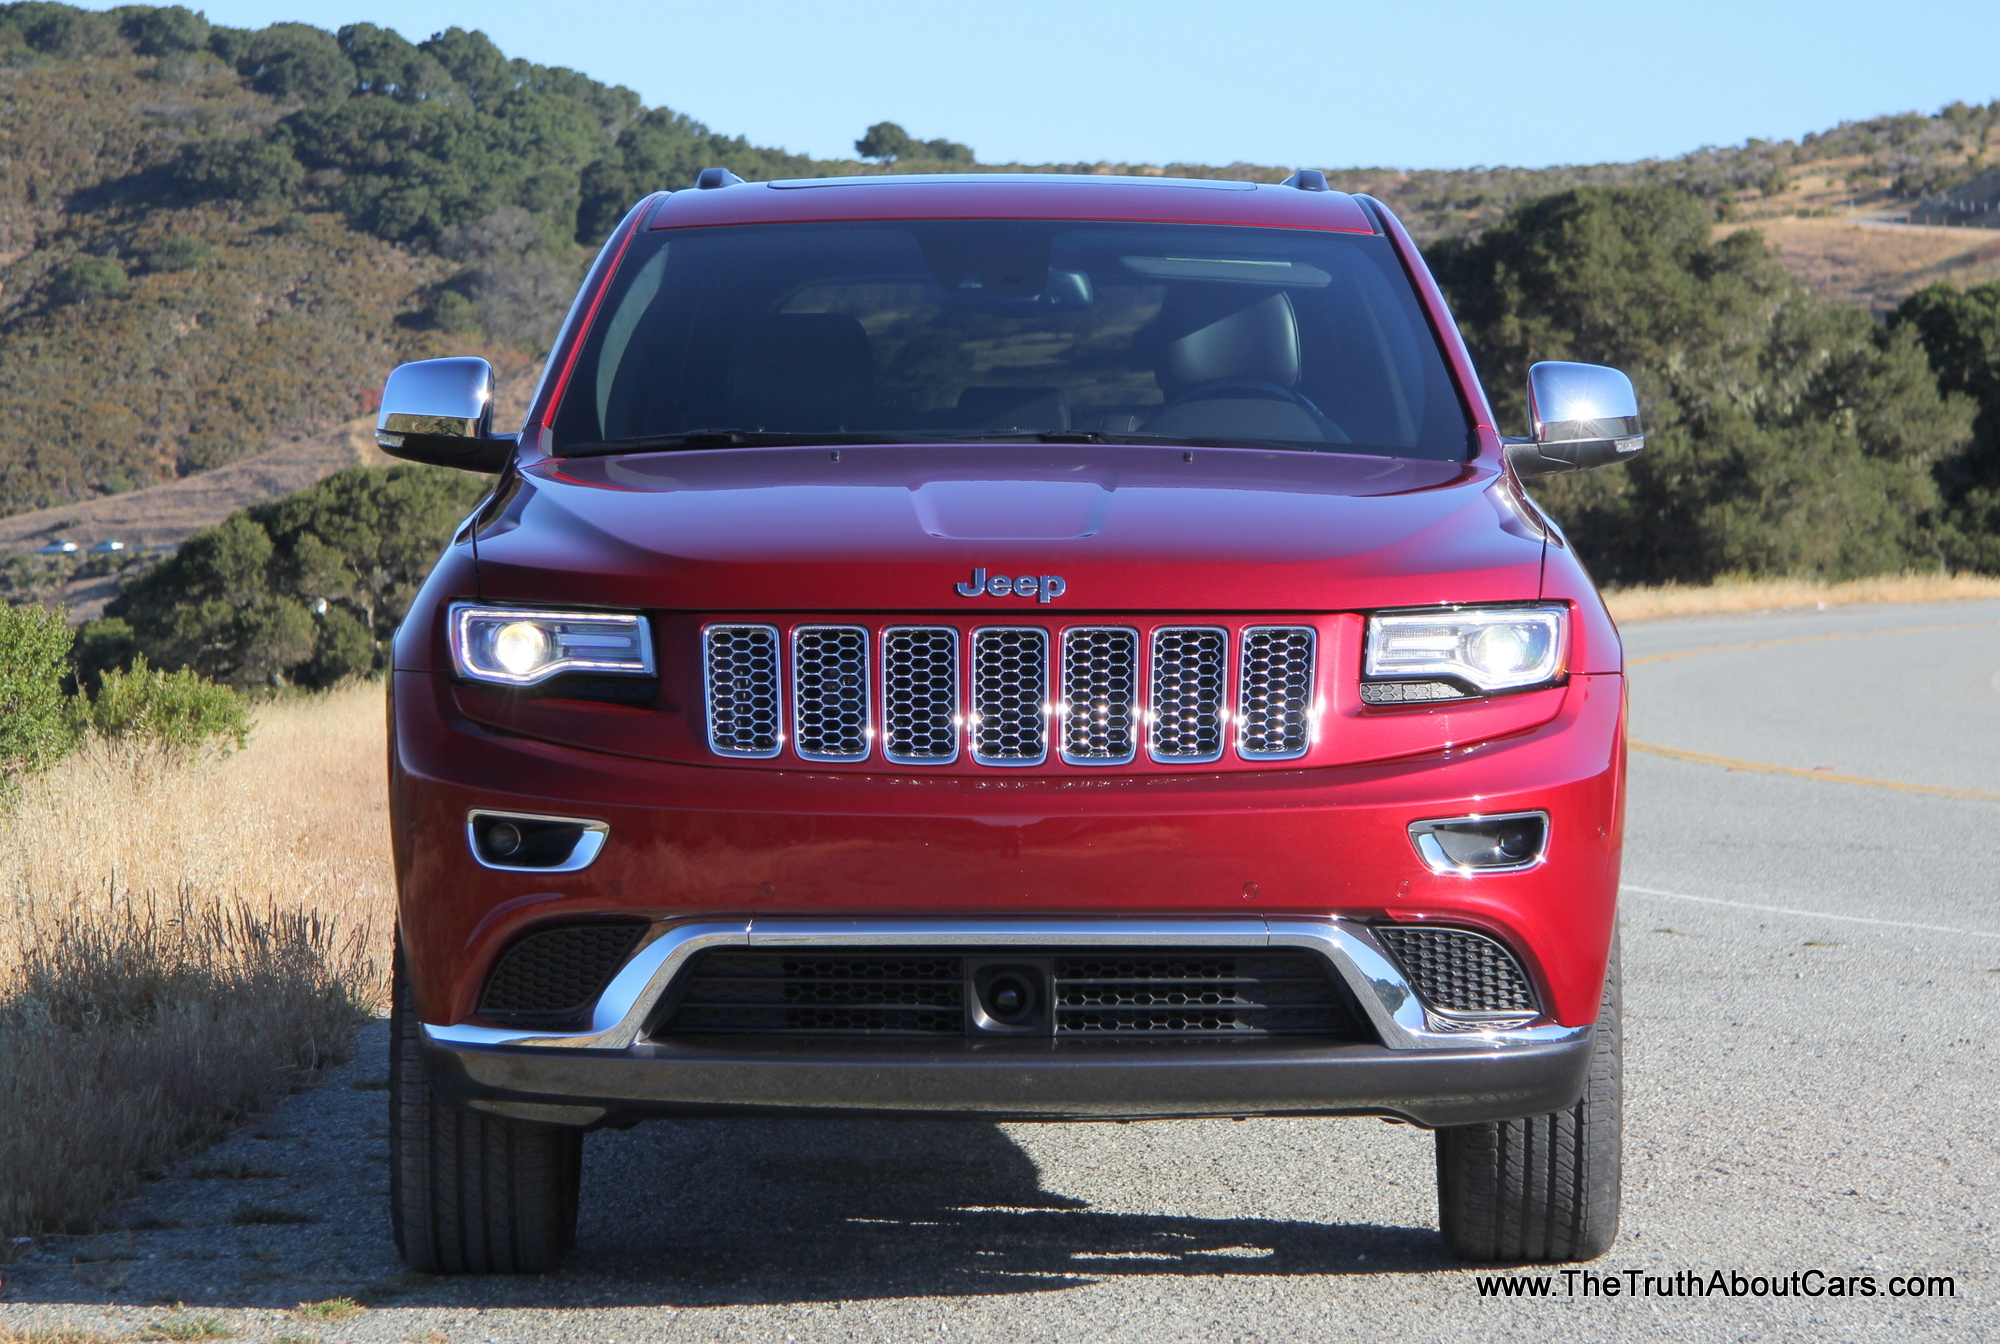 Jeep Grand Cherokee Exterior Accessories